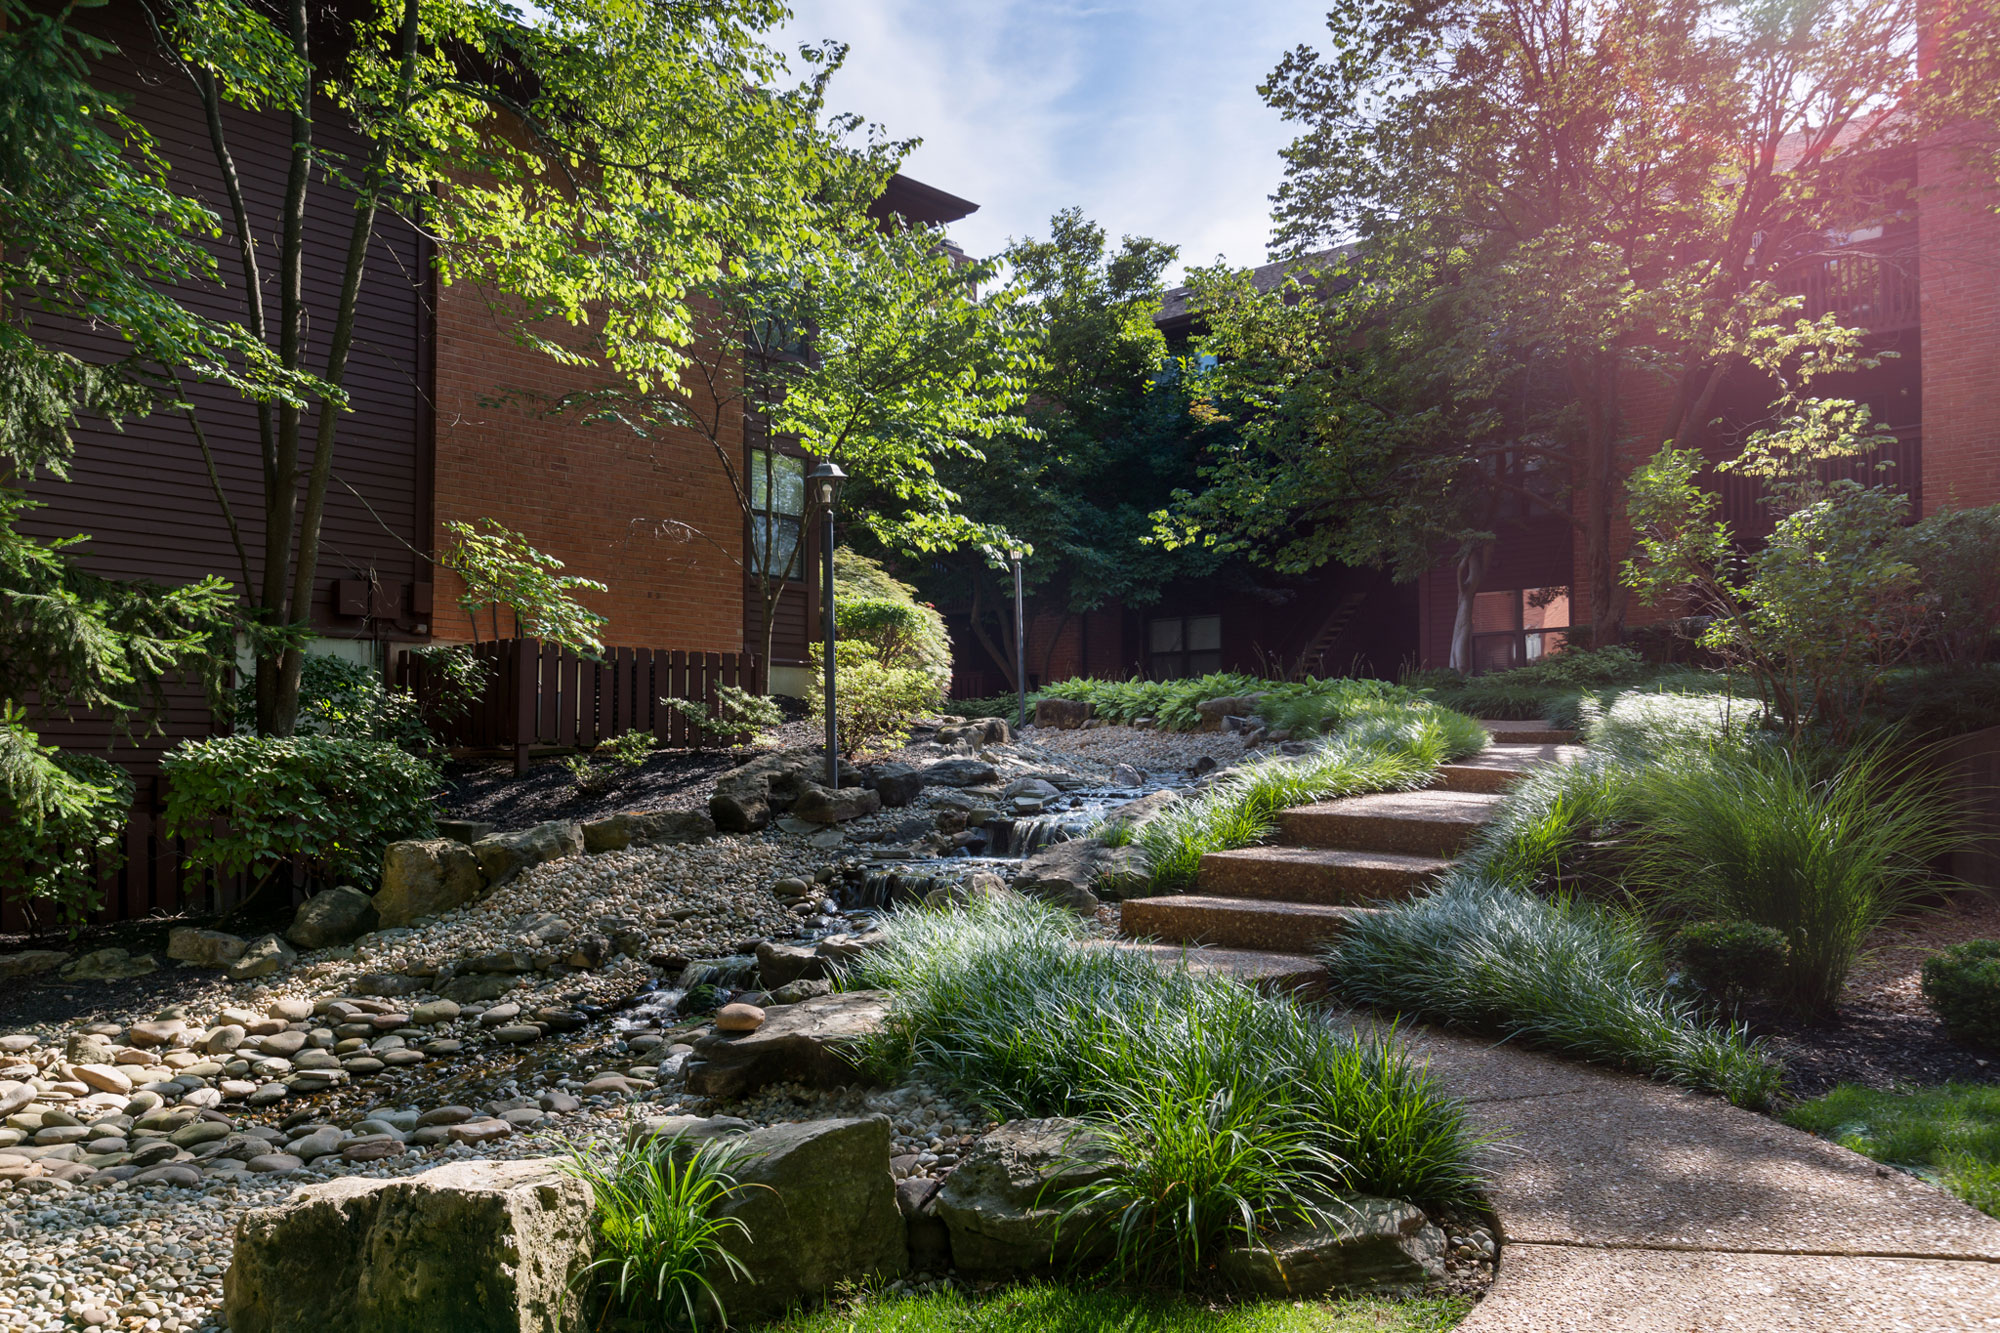 The Chesterfield Village Apartments babbling brook